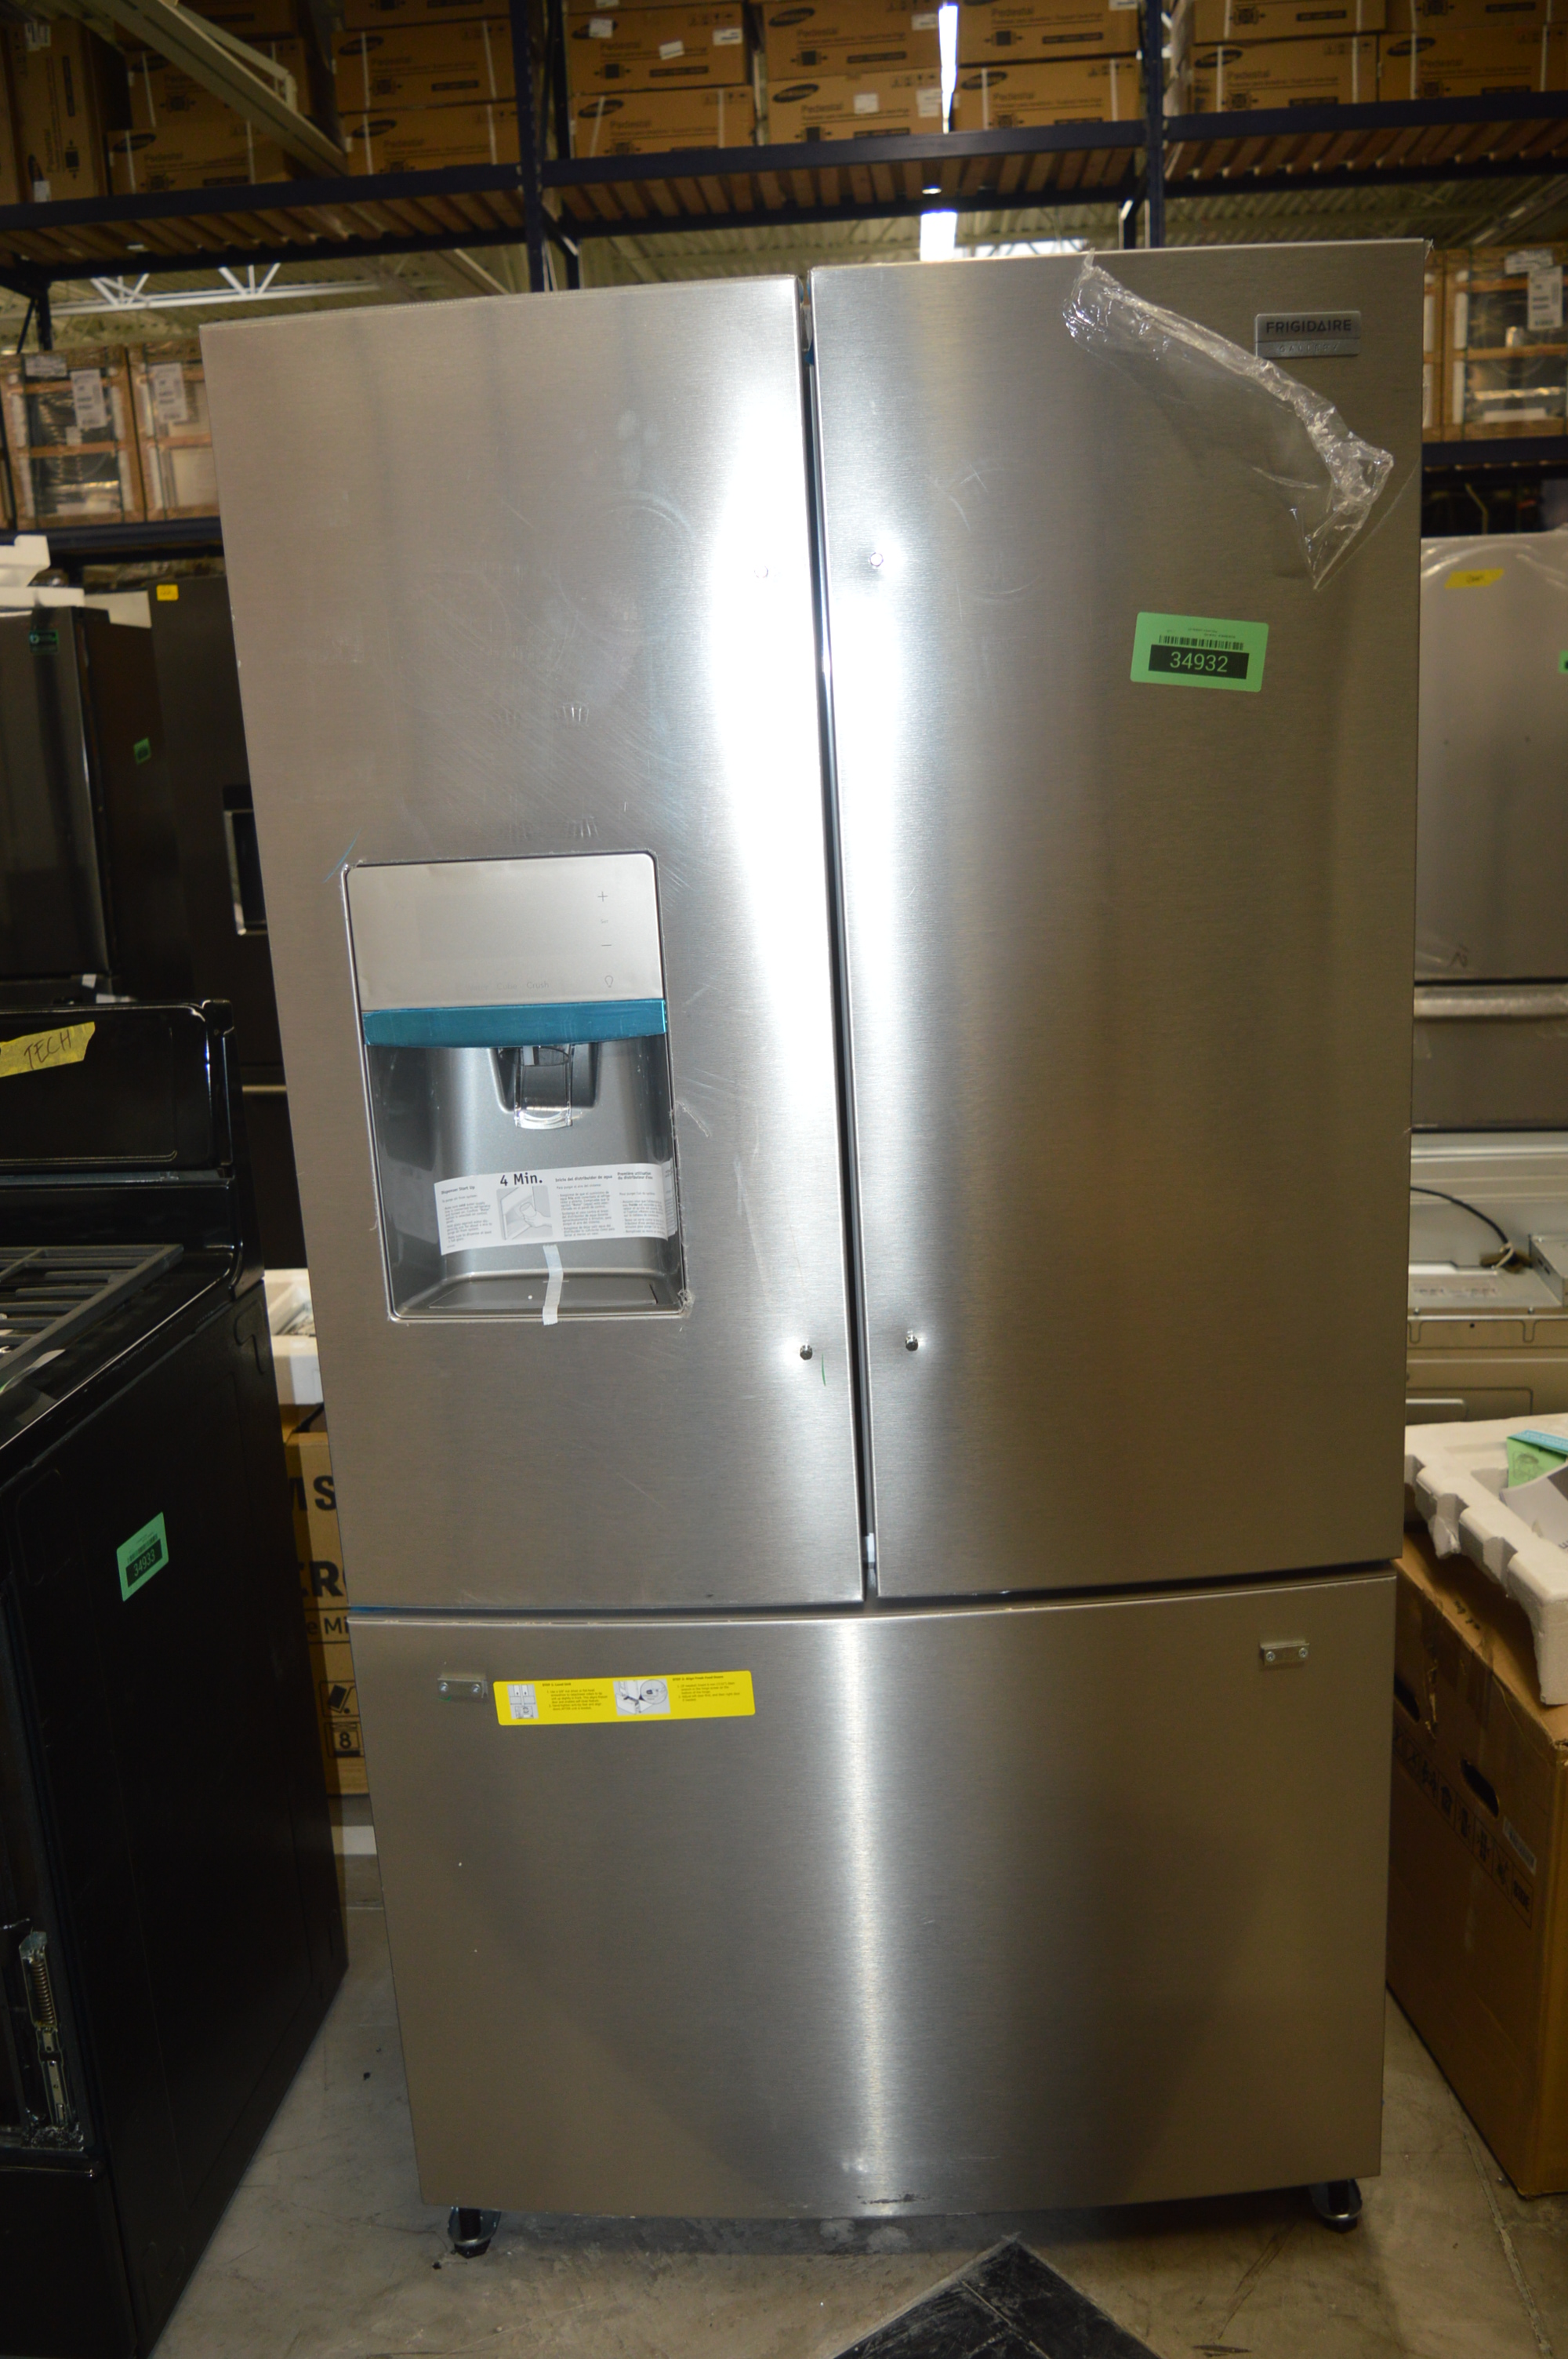 Frigidaire LGHB2869TF French Door Refrigerator Stainless